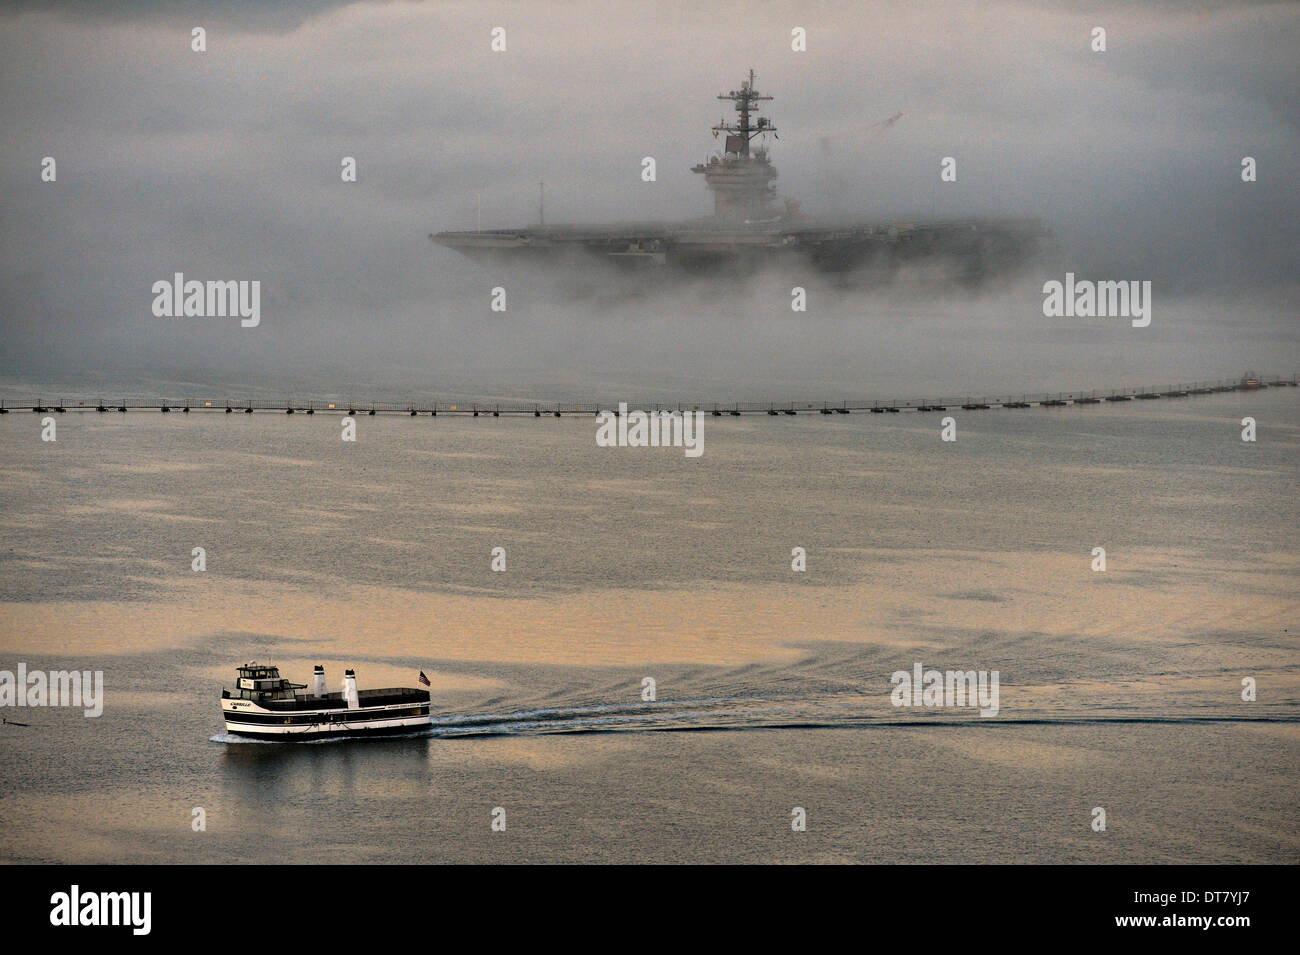 San Diego, CA, USA . 11th Feb, 2014. A commuter ferry passes the US Navy nuclear aircraft carrier USS Ronald Reagan enveloped in fog as she sits at her berth February 11, 2014 in San Diego, CA. Credit:  Planetpix/Alamy Live News - Stock Image